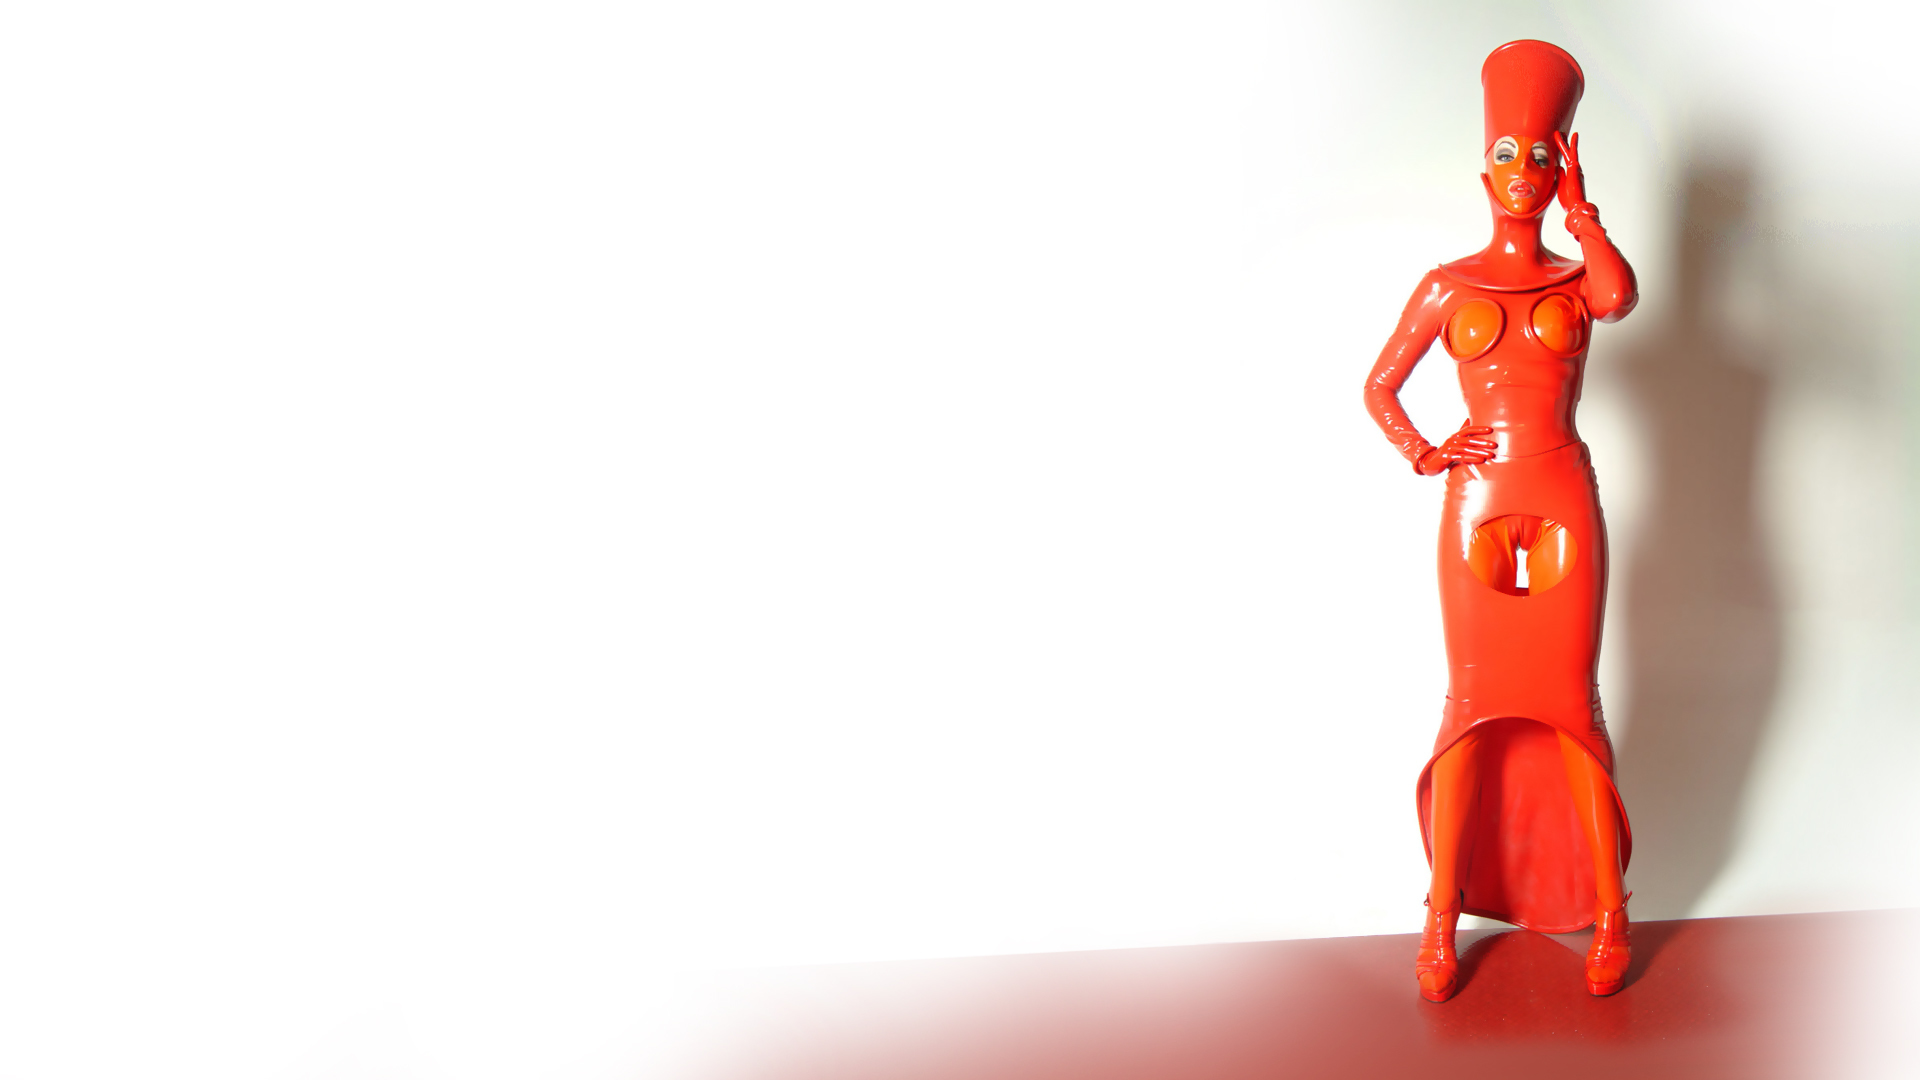 woman fetish latex standing HD Wallpaper